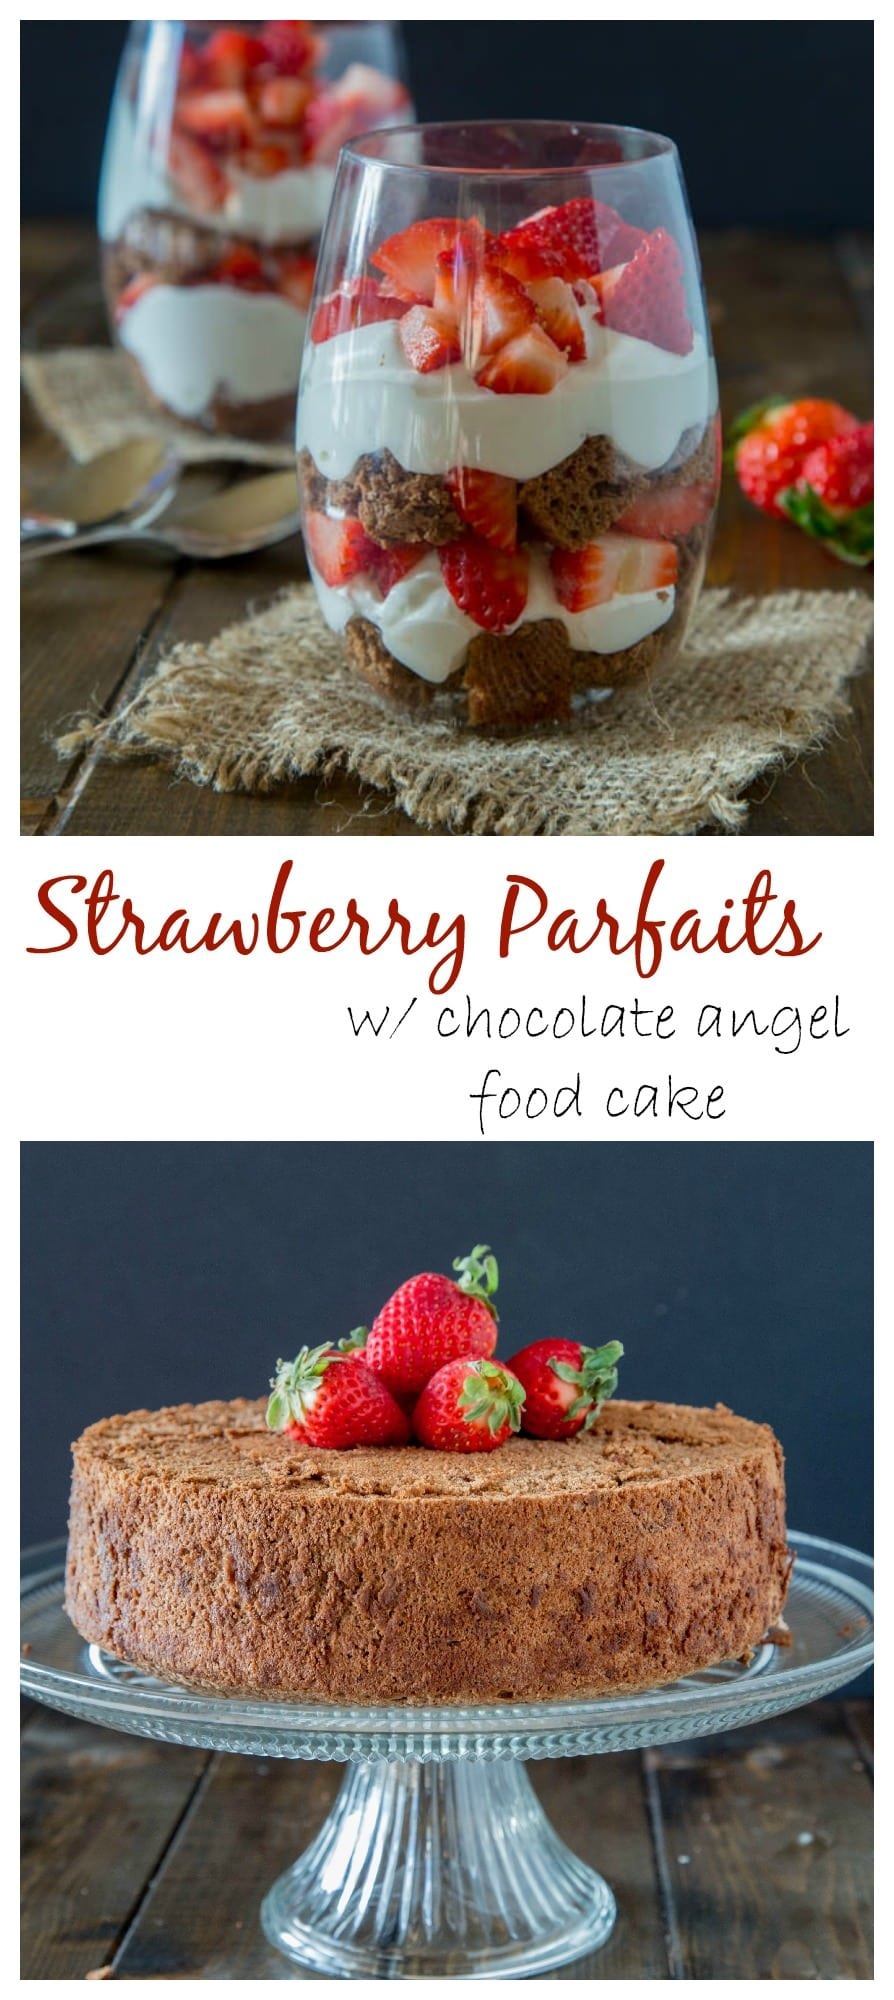 Strawberry Parfaits with Chocolate Angel Food Cake - Light and airy chocolate angel food cake, fresh homemade whipped cream and juicy strawberries make for an easy but show stopping dessert.